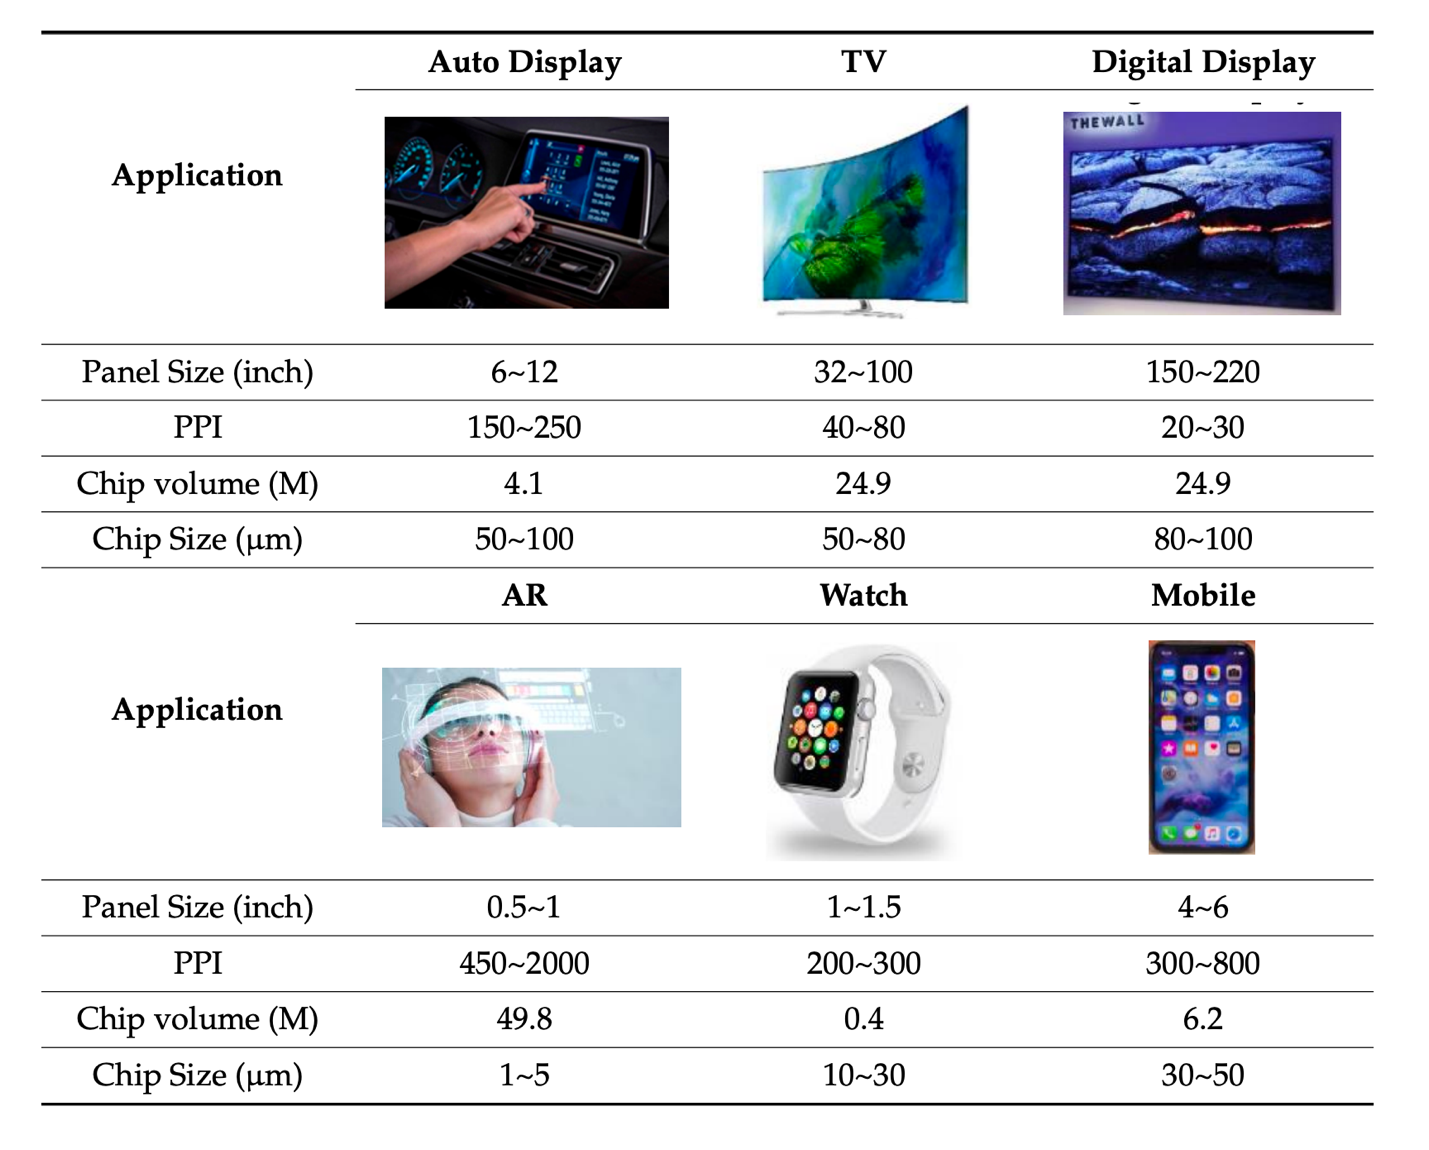 Figure 13: Common pixel densities possible at various display panel sizes given manufacturing capabilities today. [32]